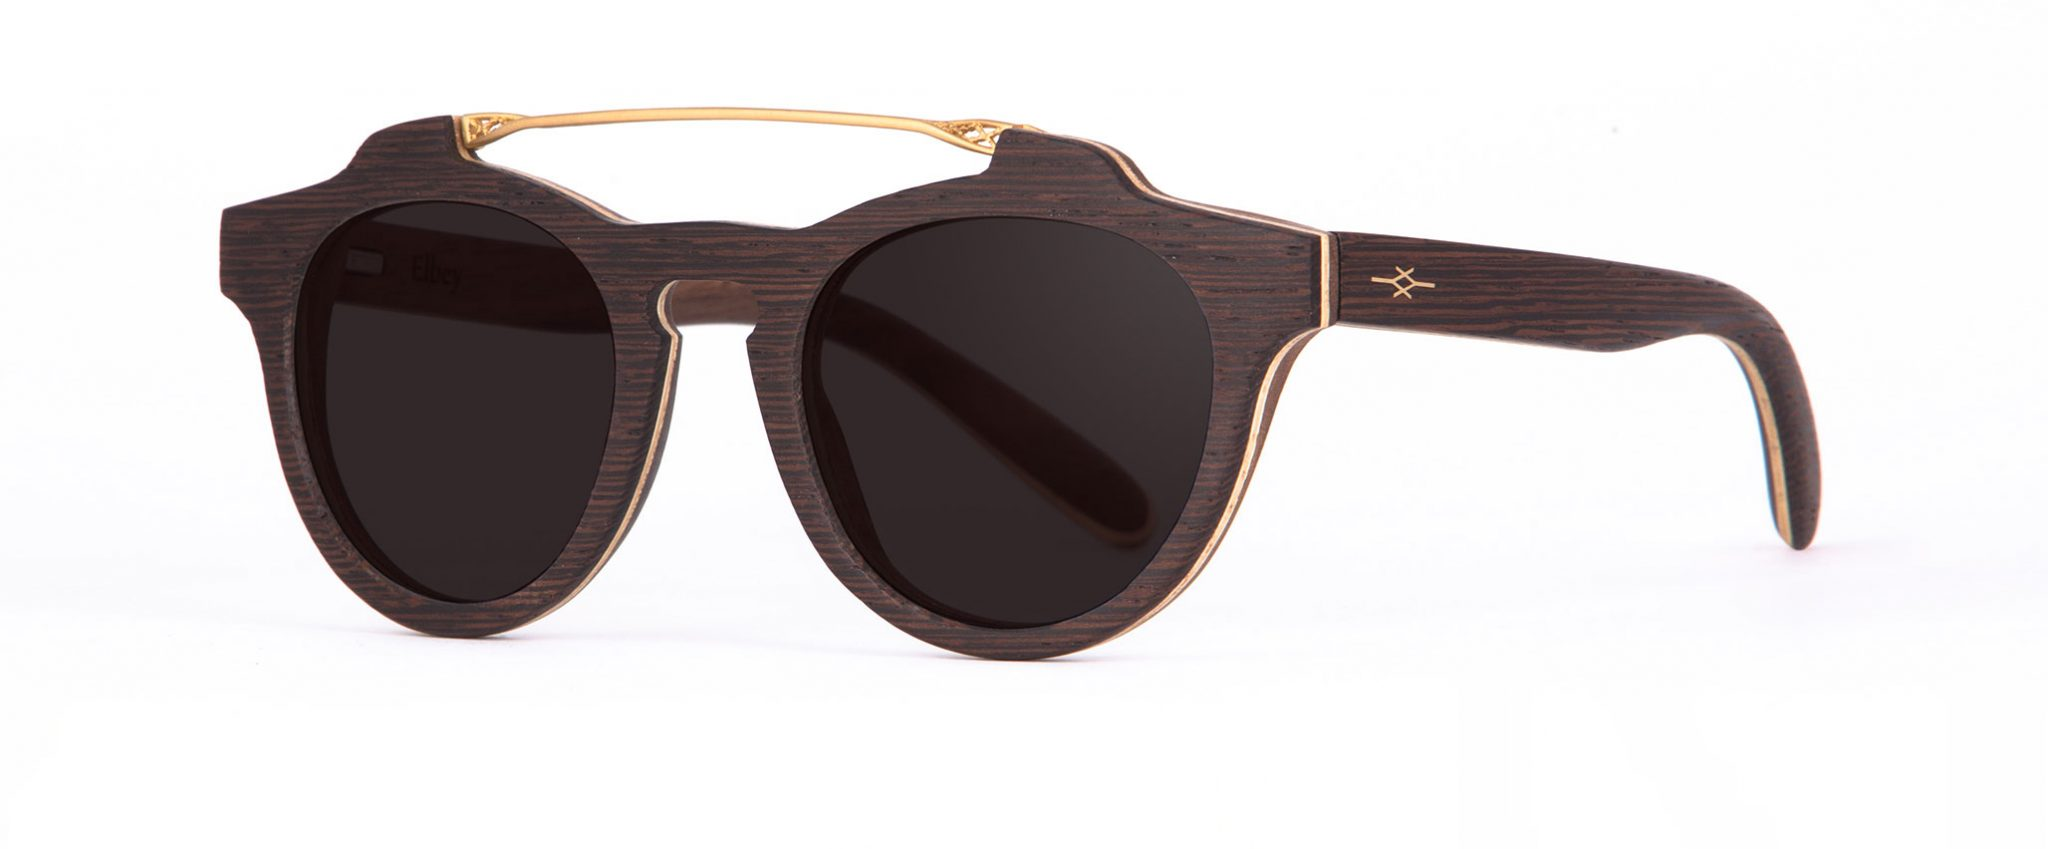 El Bey side Wenge Sunglasses Designer Eyewear Jewelry